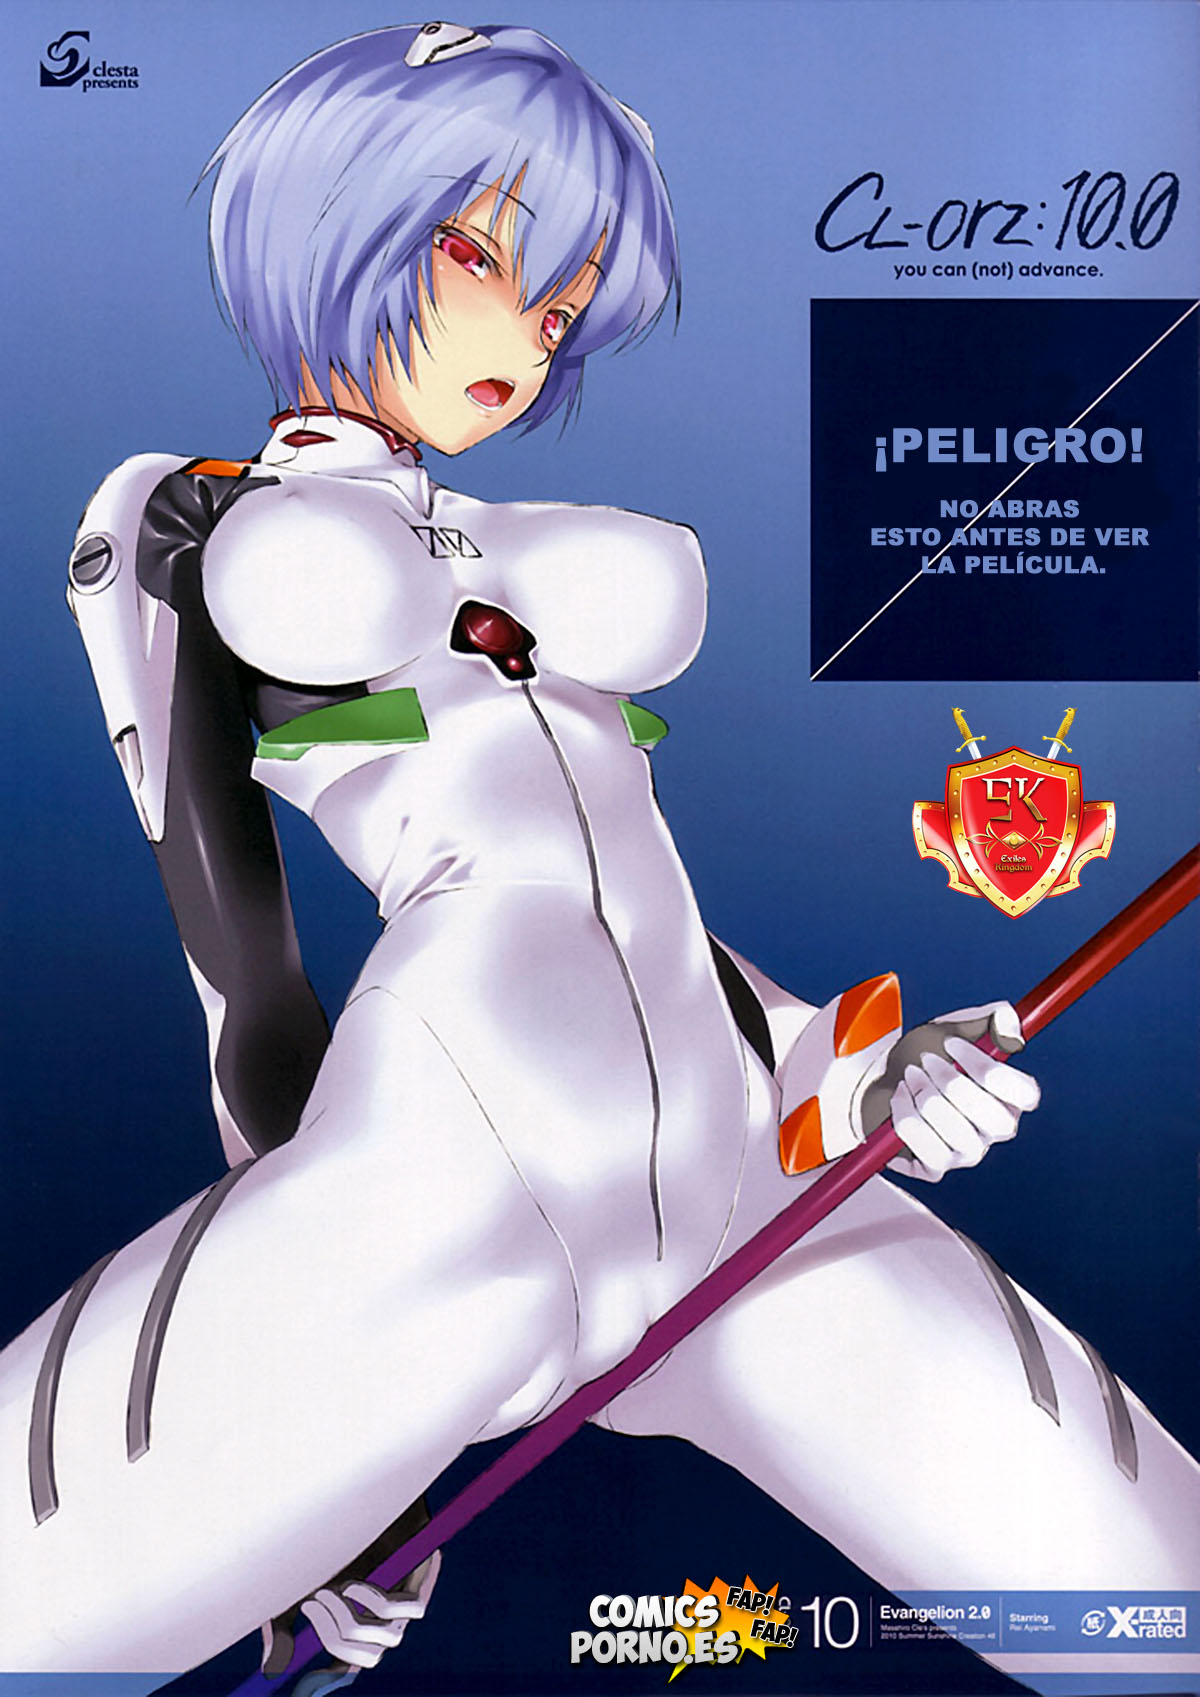 CL-orz: 10.0 you can [Clesta] (Evangelion)